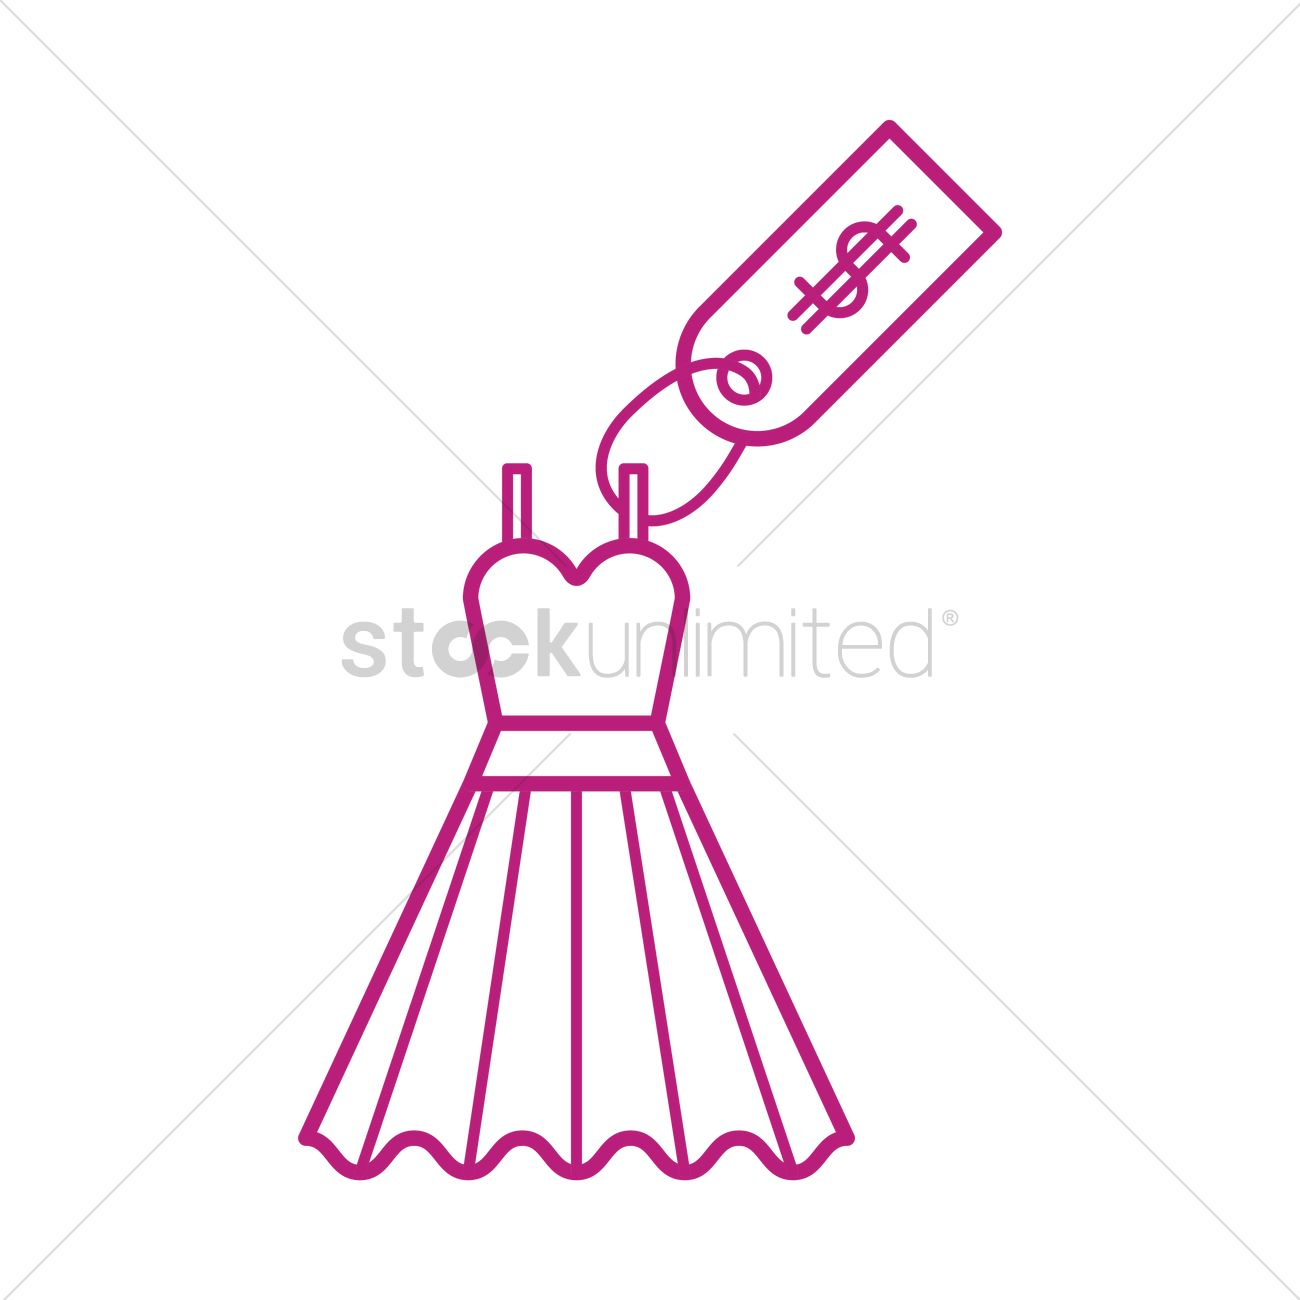 Dress with price tag Vector Image - 1591406 | StockUnlimited